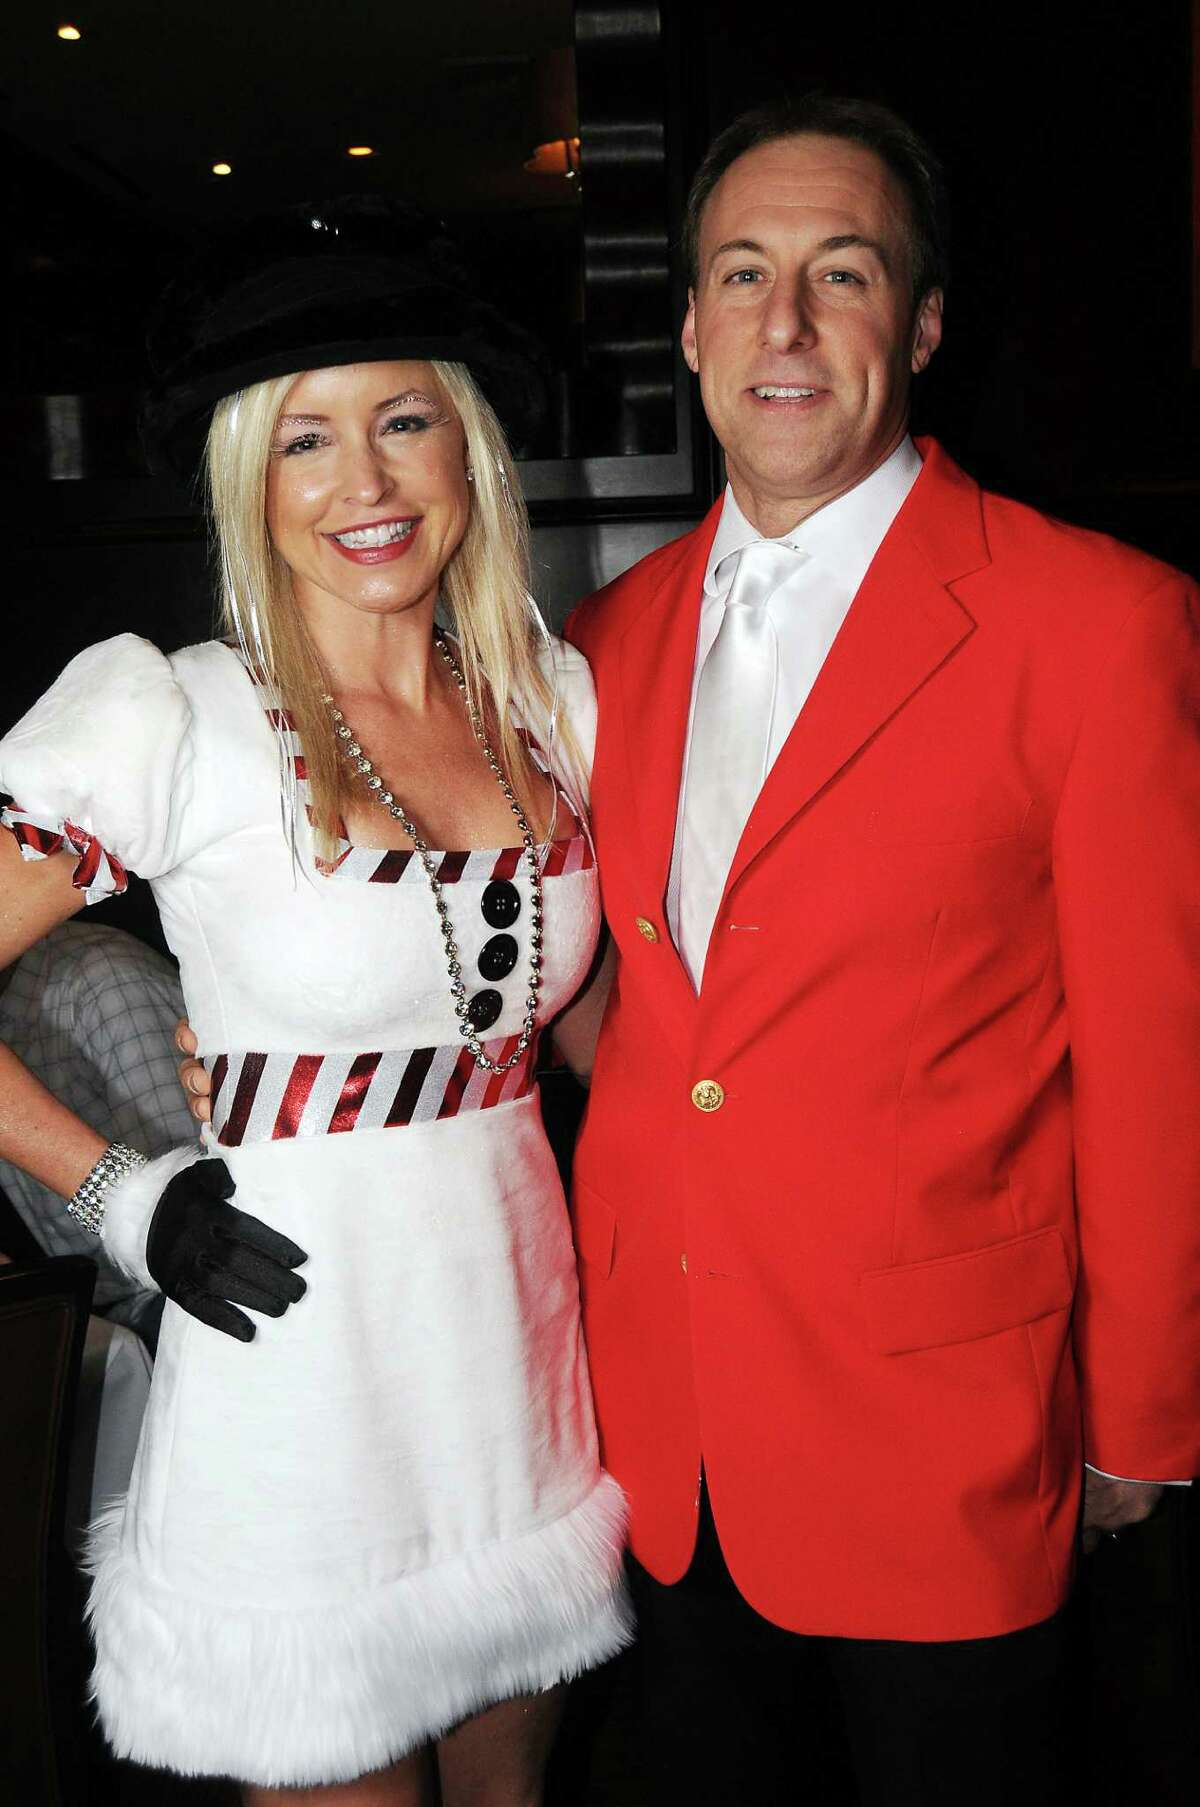 Owner Johnny Vasello and his wife, Kristine